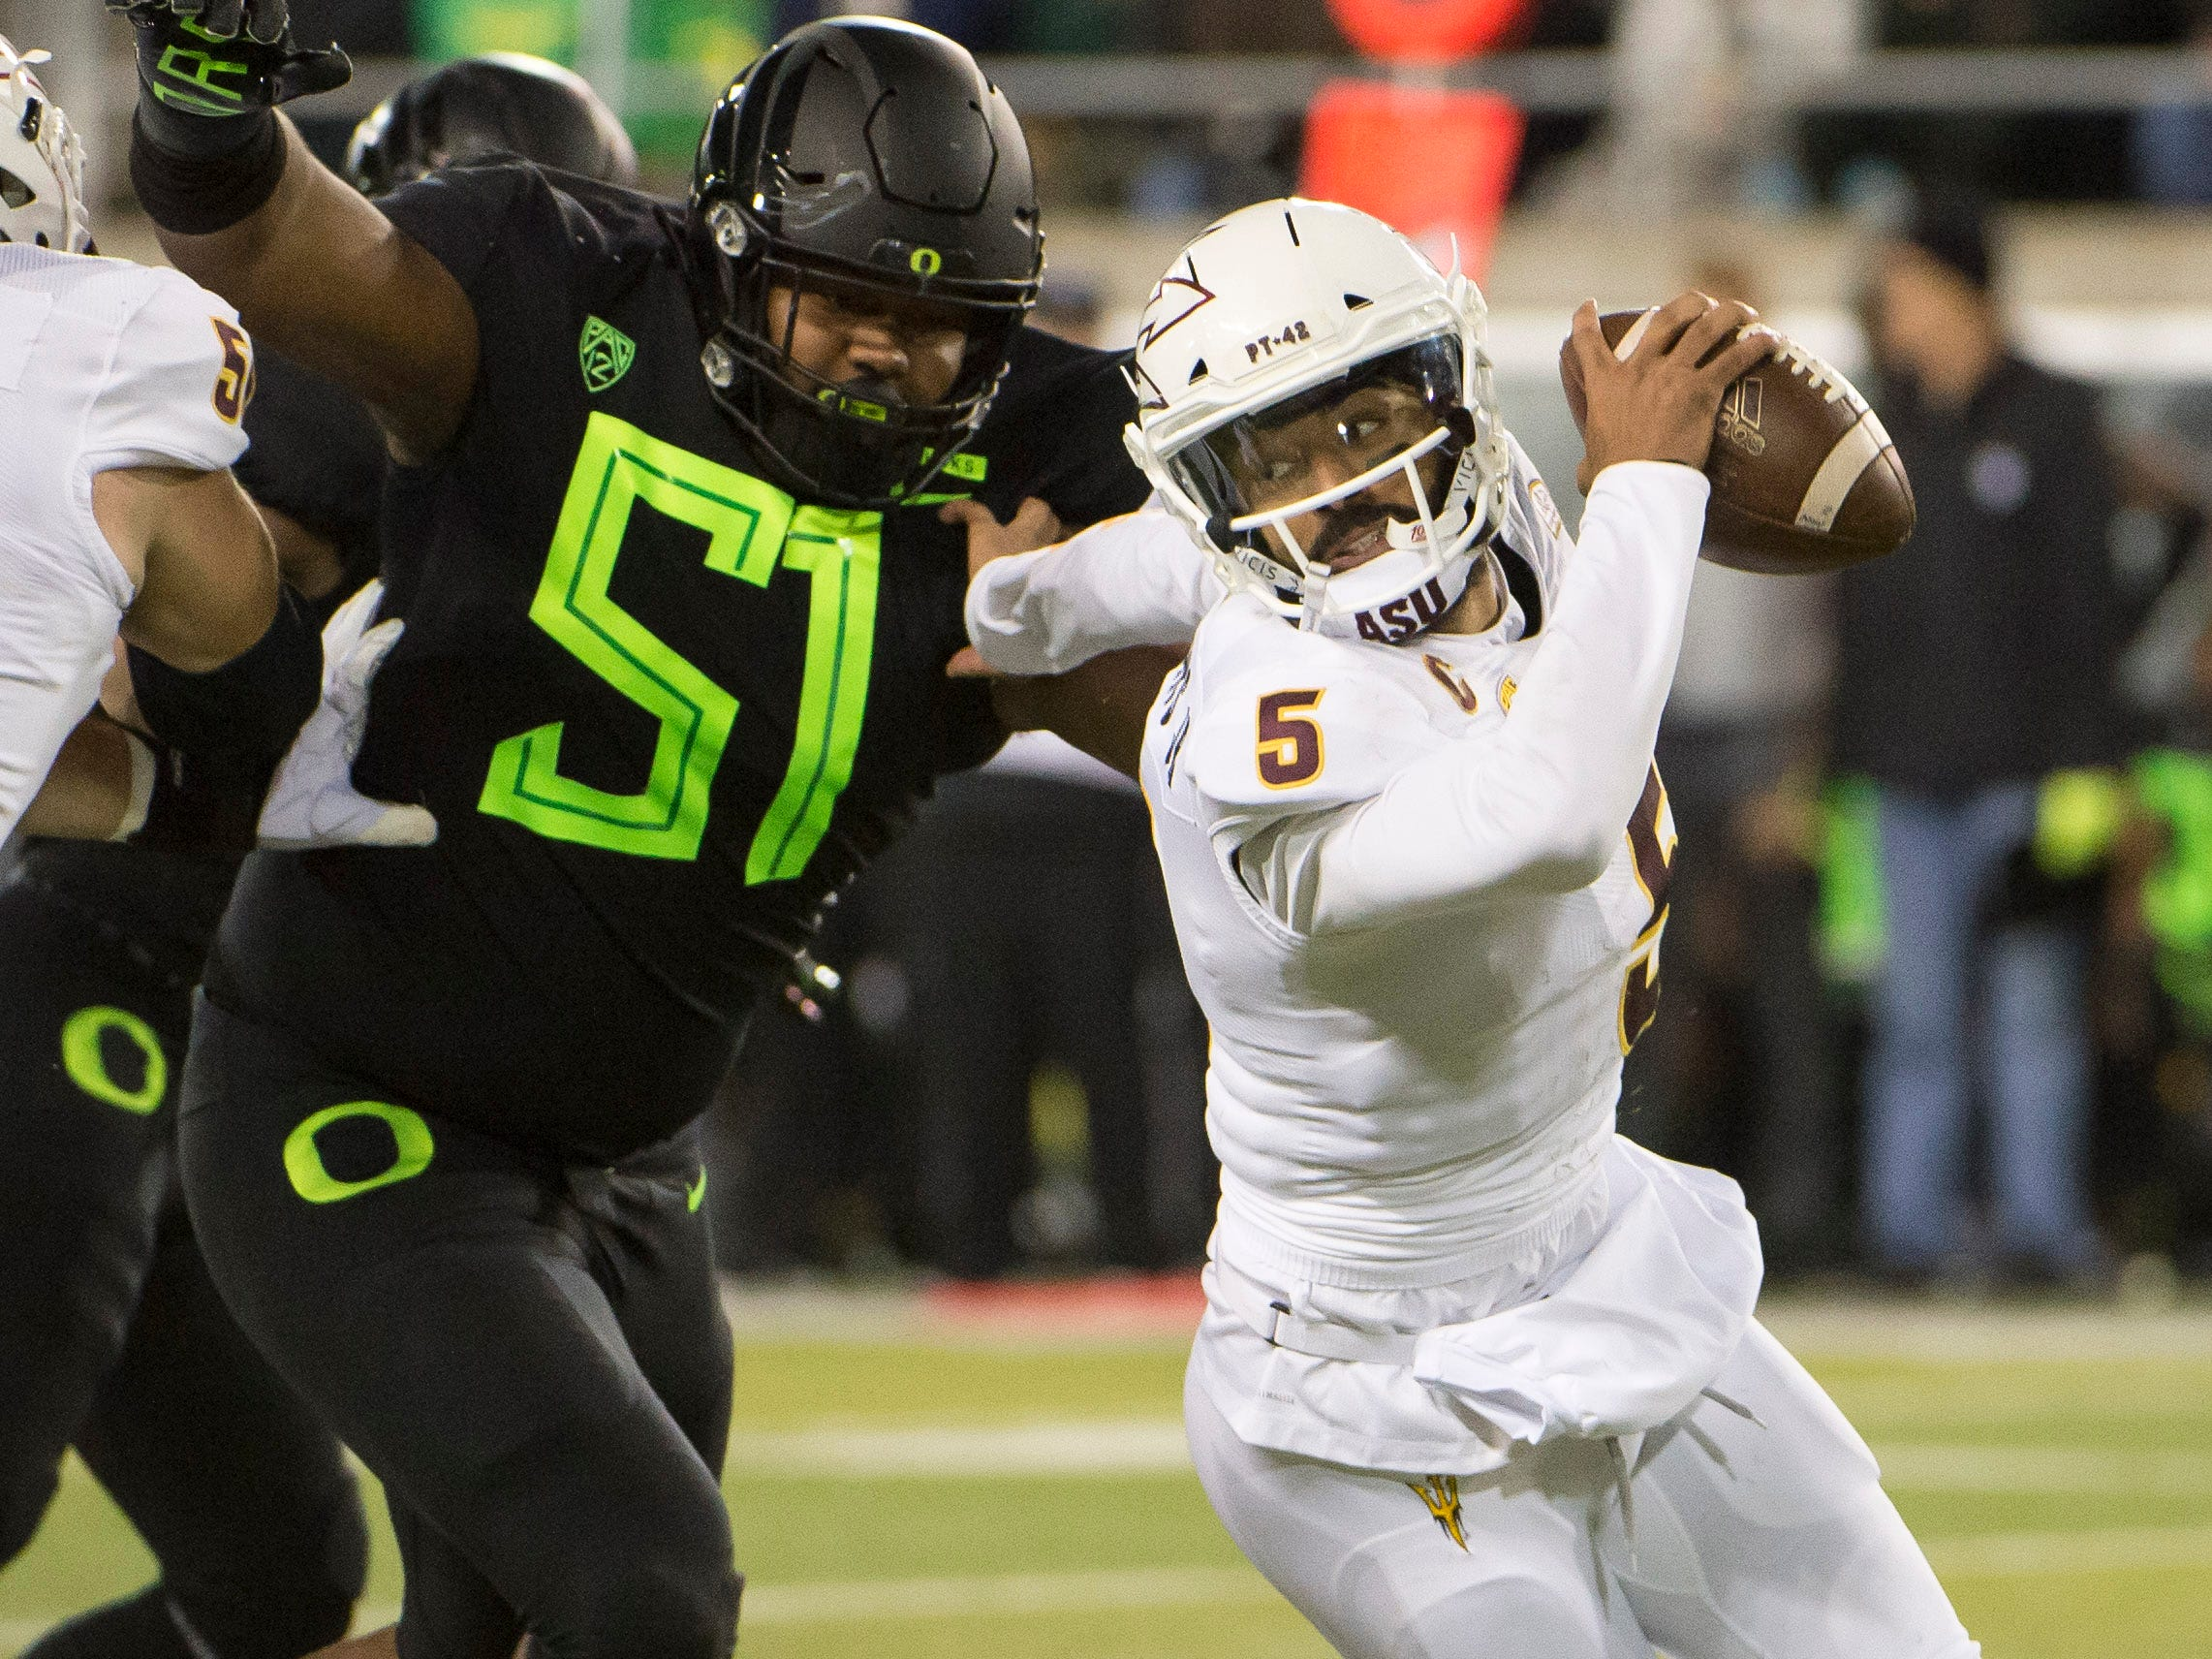 Nov 17, 2018; Eugene, OR, USA; Arizona State Sun Devils quarterback Manny Wilkins (5) is pressured by Oregon Ducks defensive lineman Gary Baker (51 during the first half at Autzen Stadium. Mandatory Credit: Troy Wayrynen-USA TODAY Sports